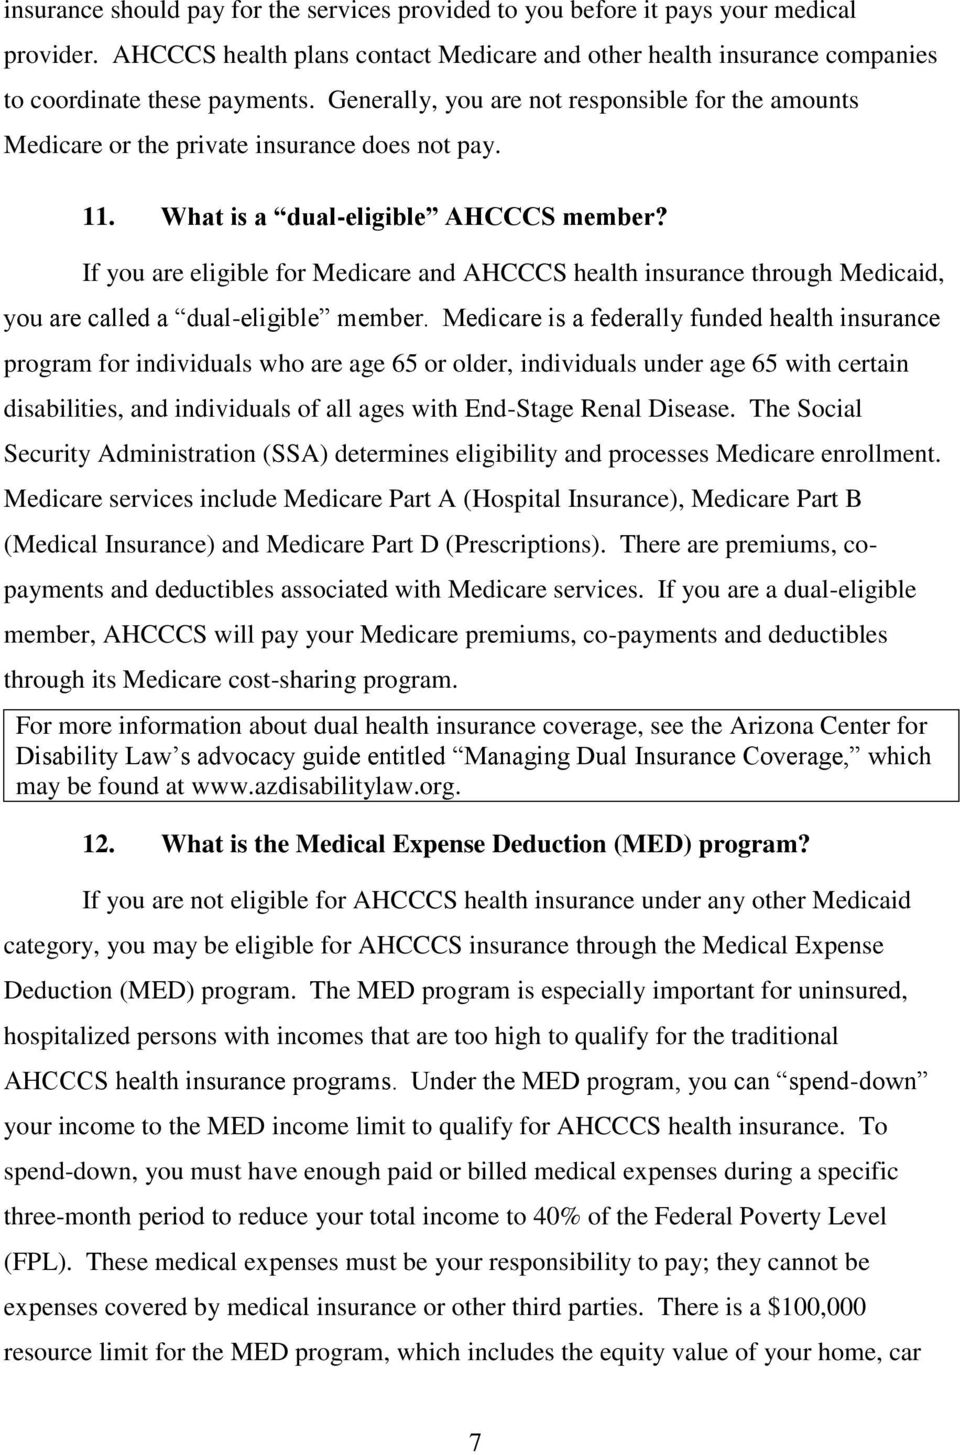 If you are eligible for Medicare and AHCCCS health insurance through Medicaid, you are called a dual-eligible member.